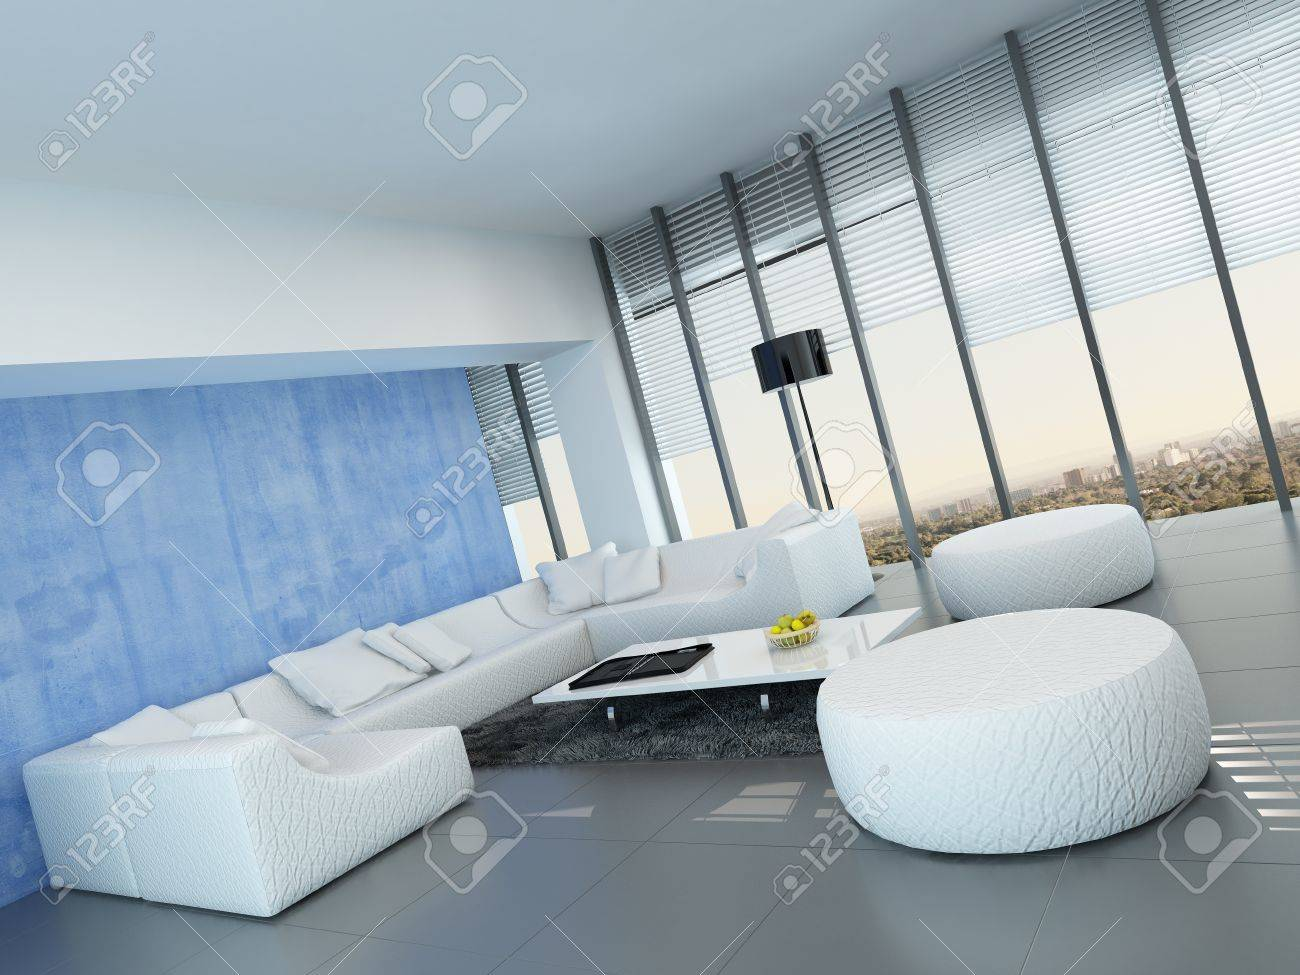 Blue and white living room - Contemporary Grey Blue And White Living Room Interior Decor With A Modular White Lounge Suite